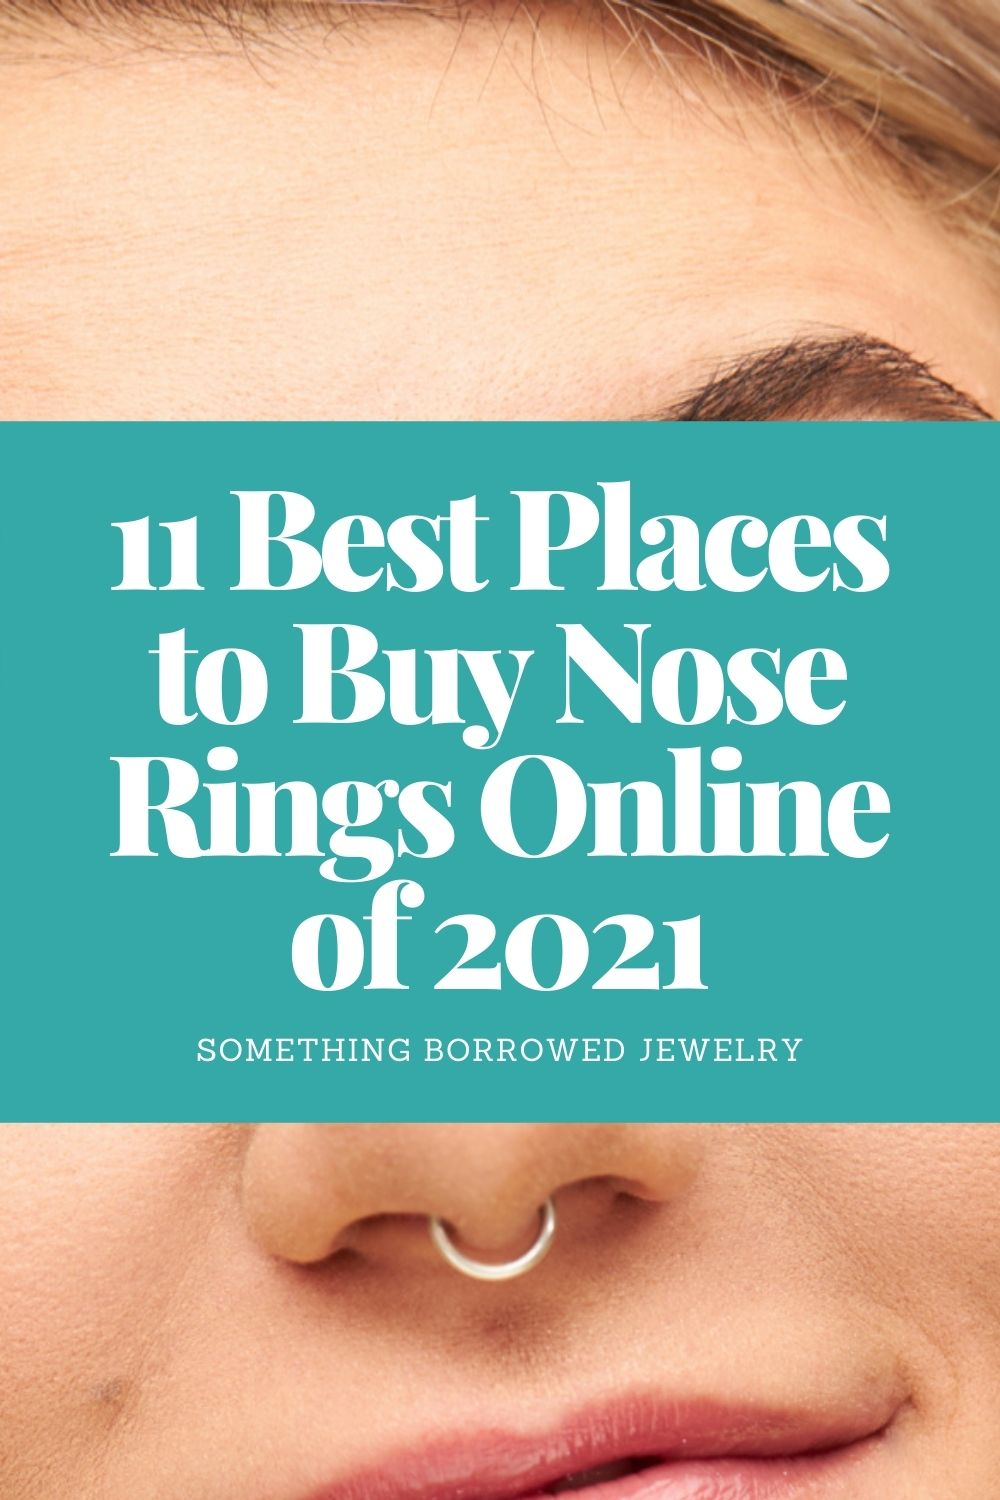 11 Best Places to Buy Nose Rings Online of 2021 pin 2